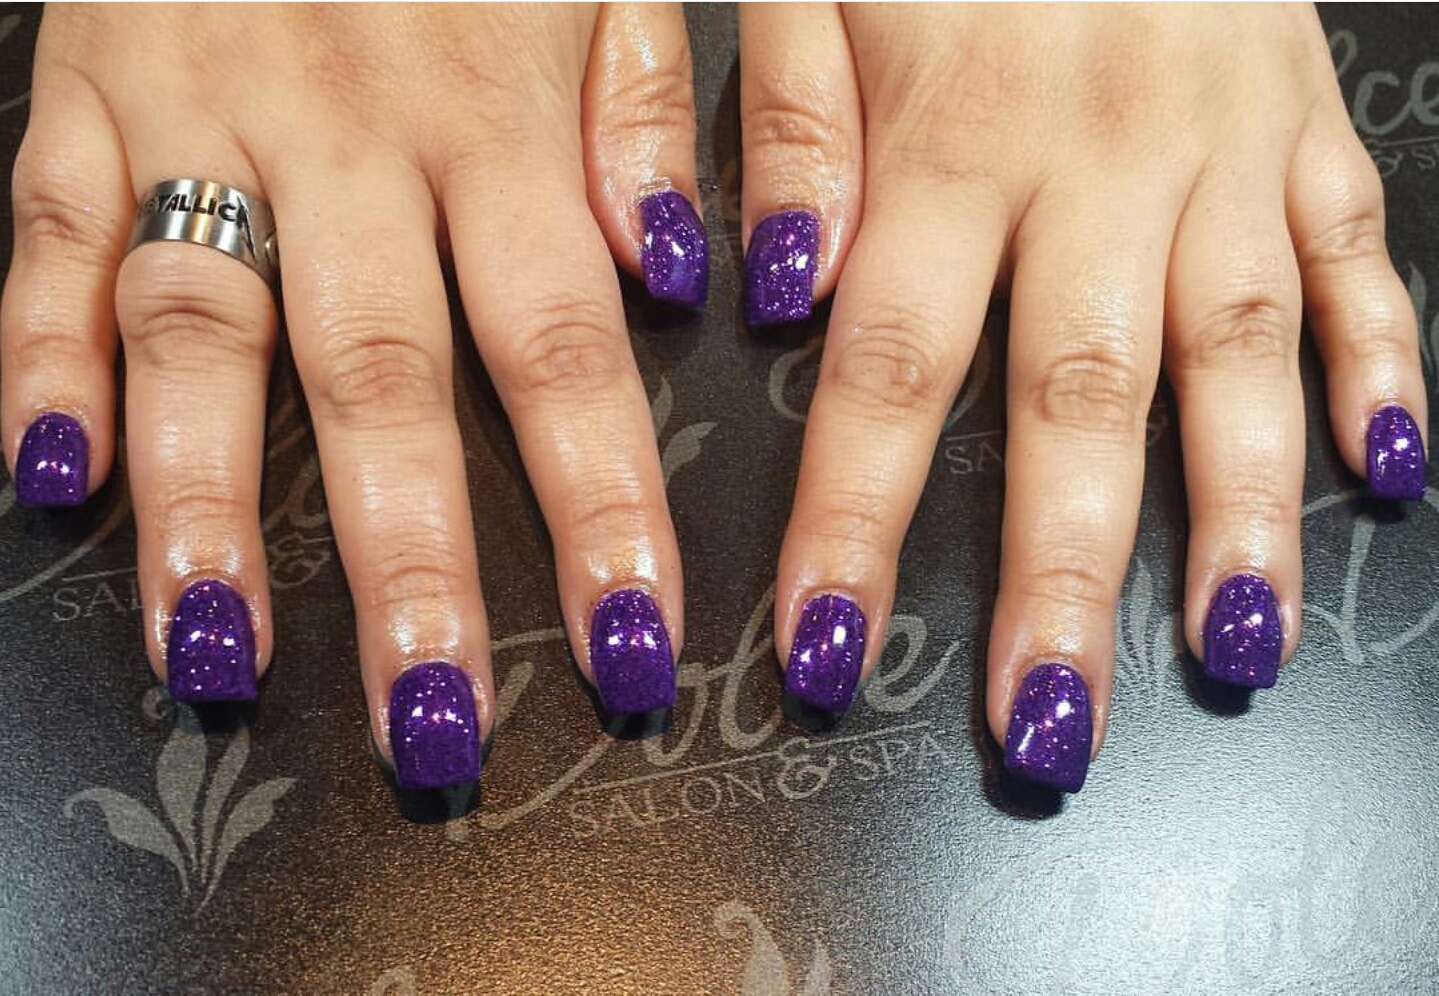 The First Polish I Got Was Actually Just A Ton Of Loose Purple Glitter With Gel Top Coat Super Sparkly